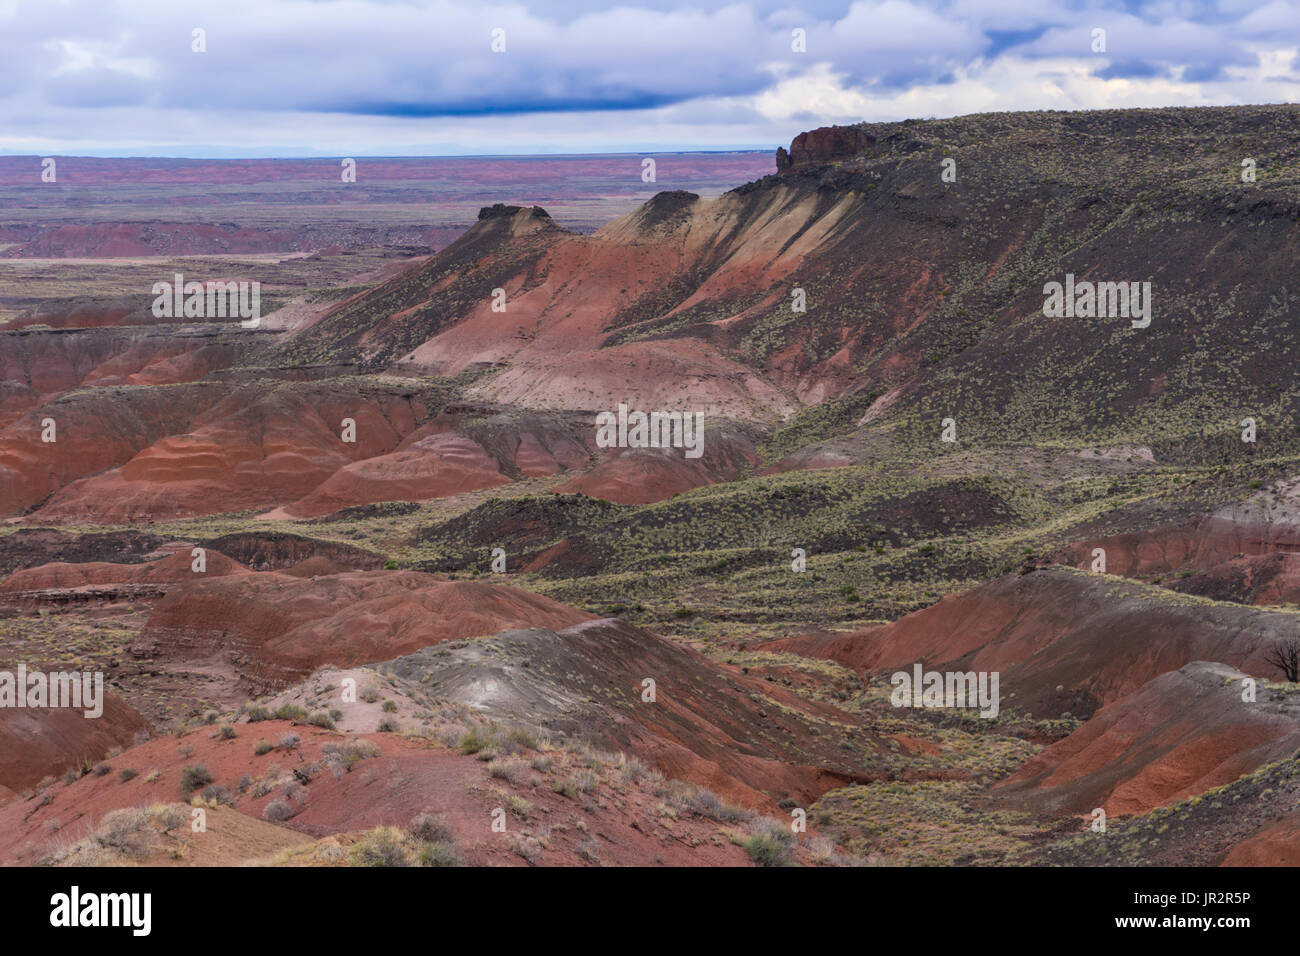 The unconformity between the black Bidahochi basalt and the red Chinle foramtion at Nizhoni Point at the Petrified Forest National Park, AZ. - Stock Image